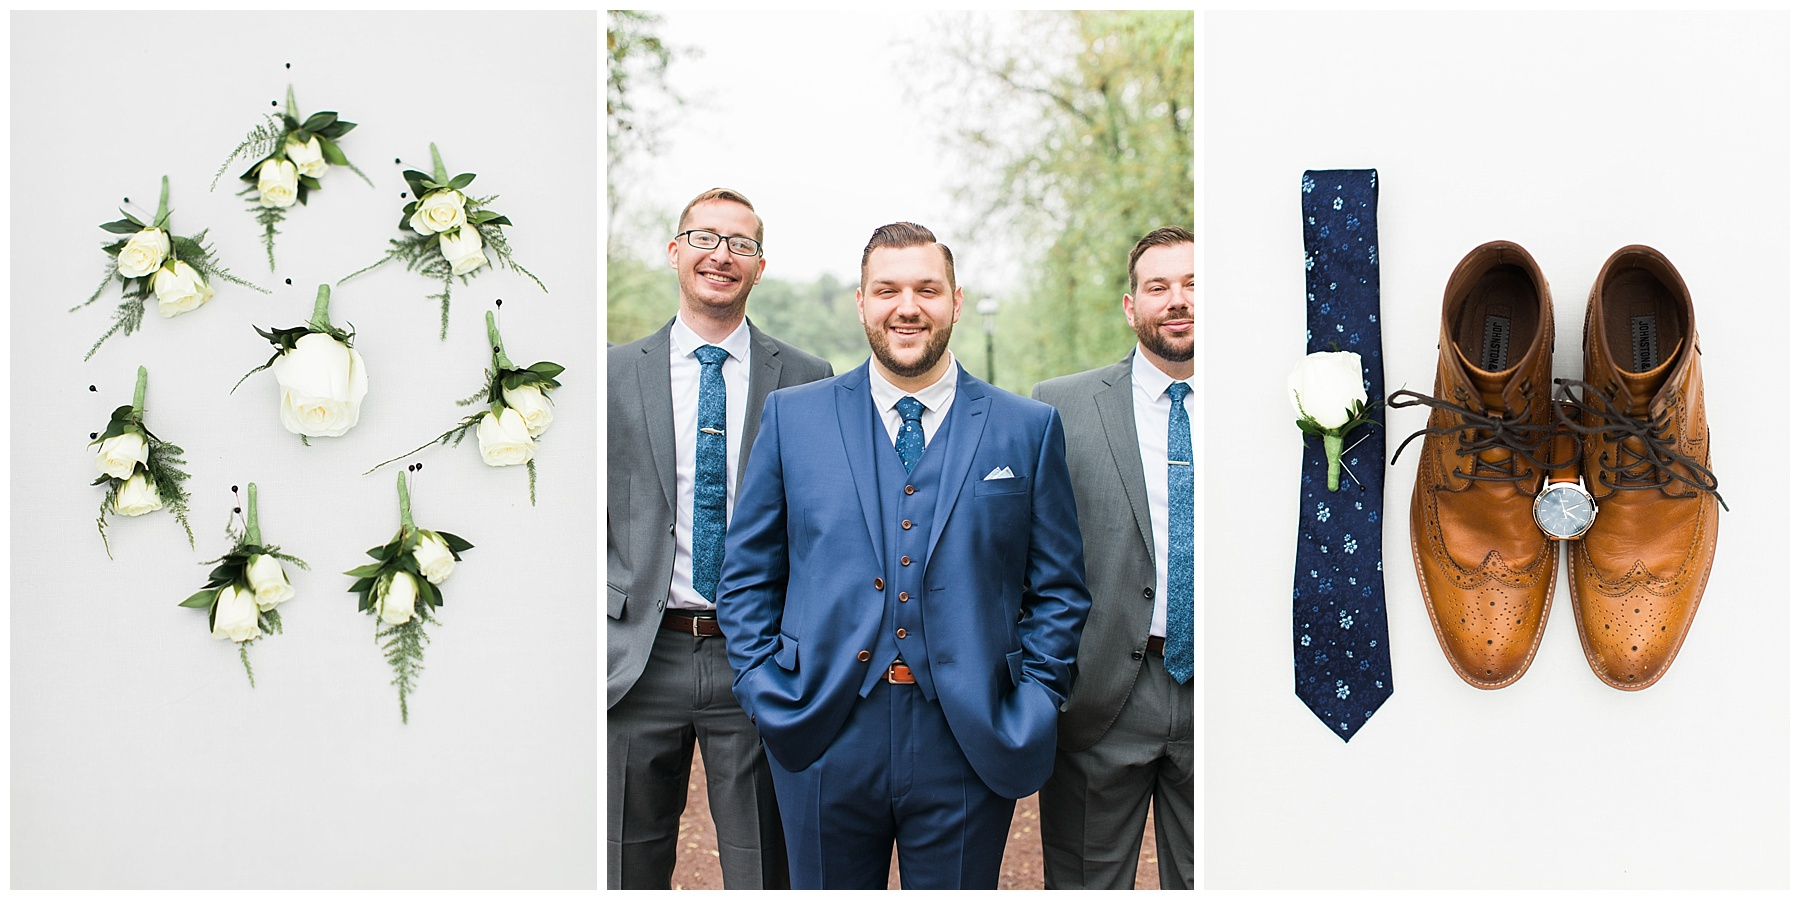 joseph ambler inn, PA wedding Photographer, Spring wedding, Montgomery County Wedding, Bucks County Wedding, wedding shoes, wedding invitation, navy blue wedding, wedding details, groom attire